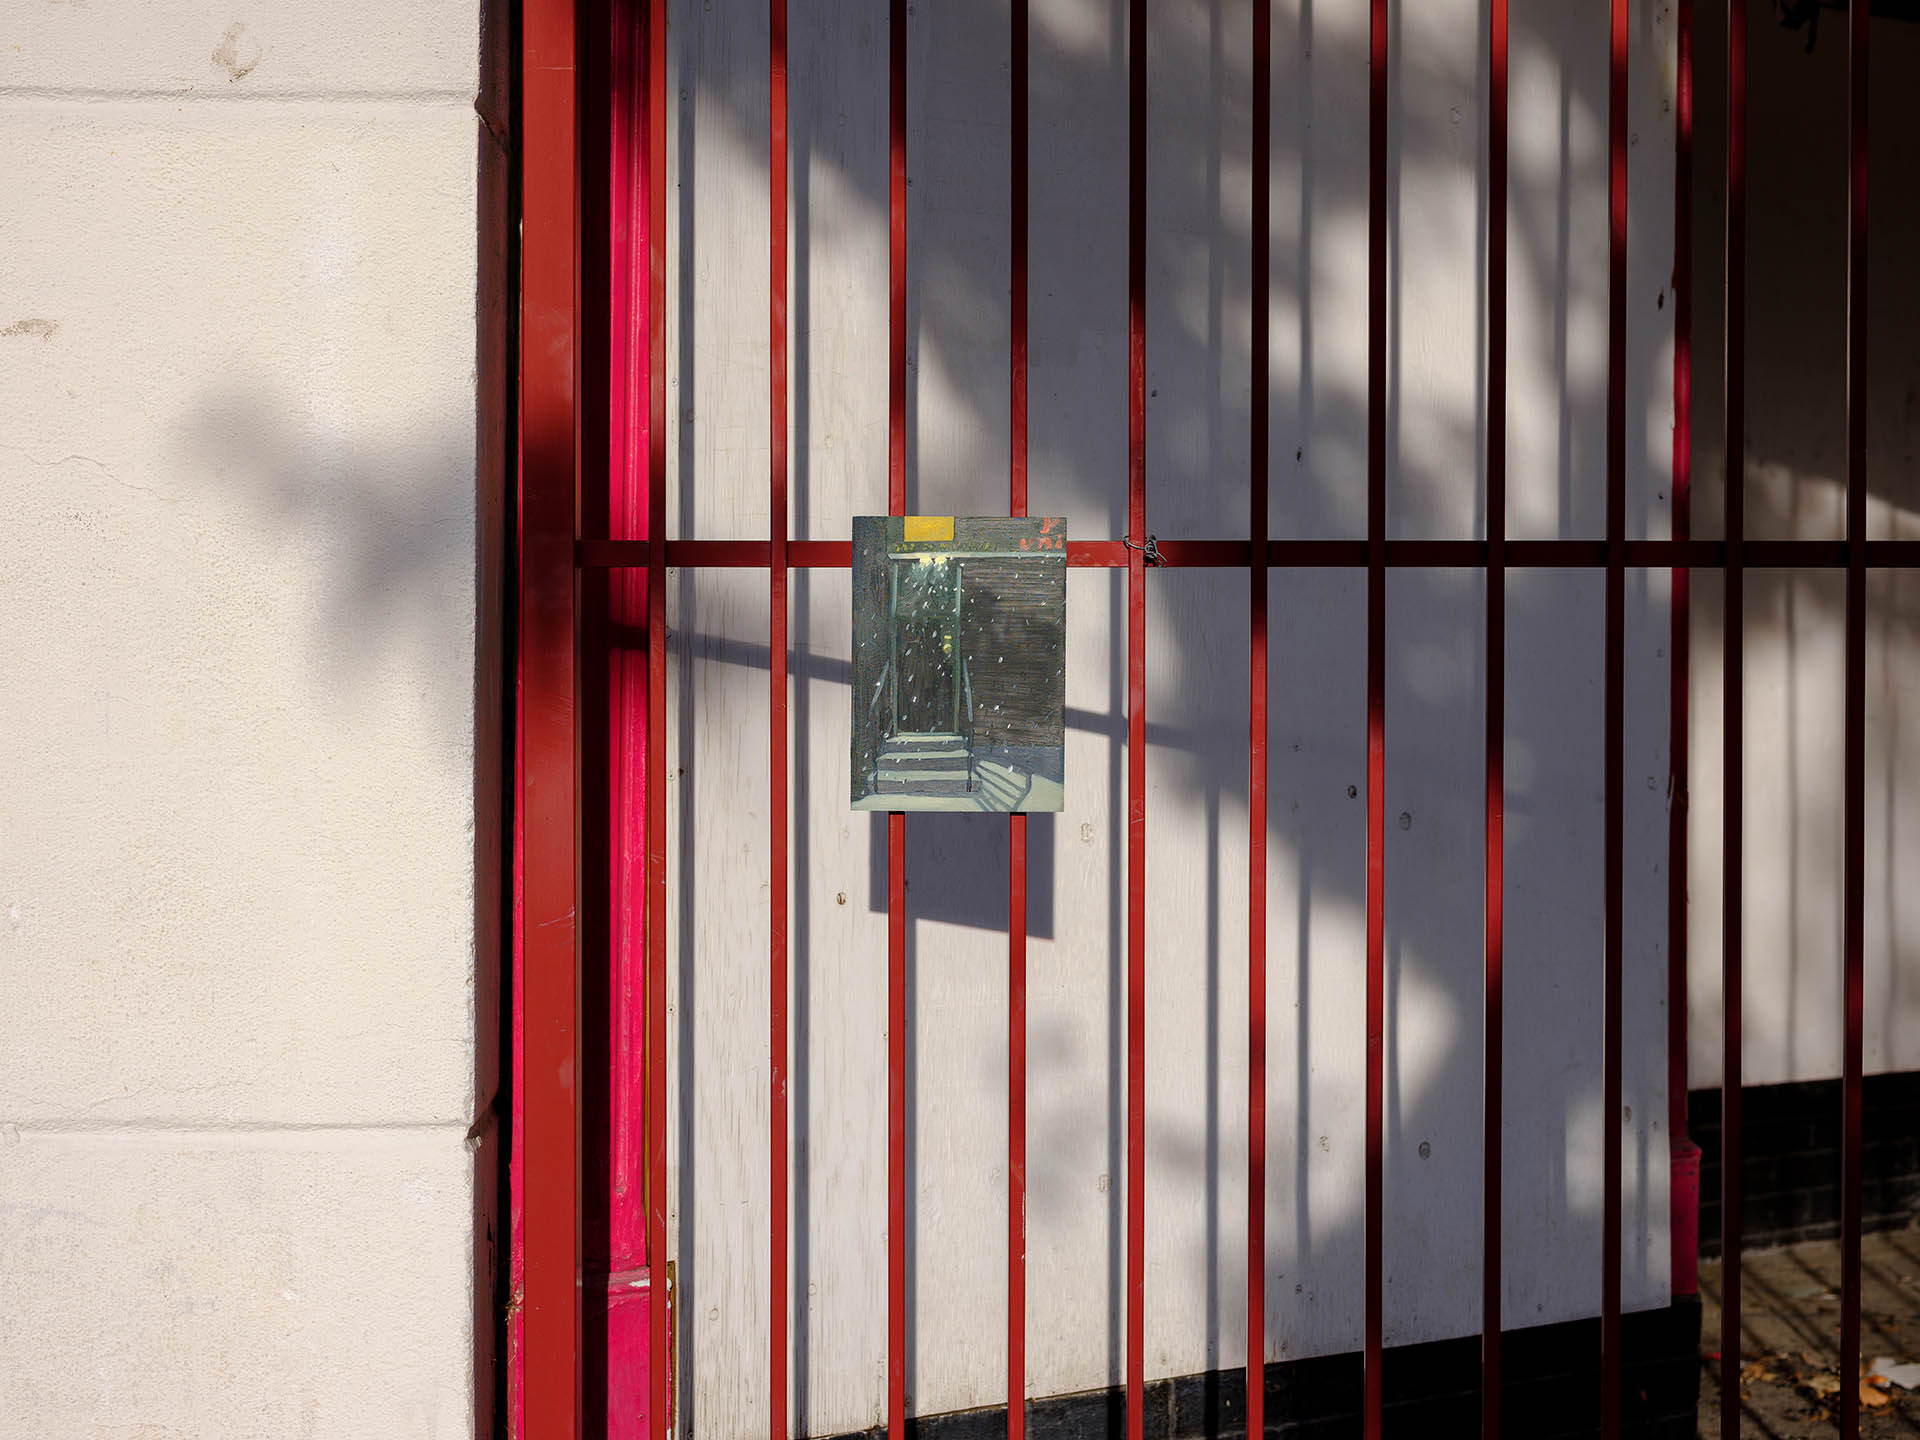 An installation view of Claudia Keep's painting, St. Nicholas Ave., captured by photographer Tag Christof in the Western United States in 2021 for MARCH. The image shows a painting hung outside on a red gate.